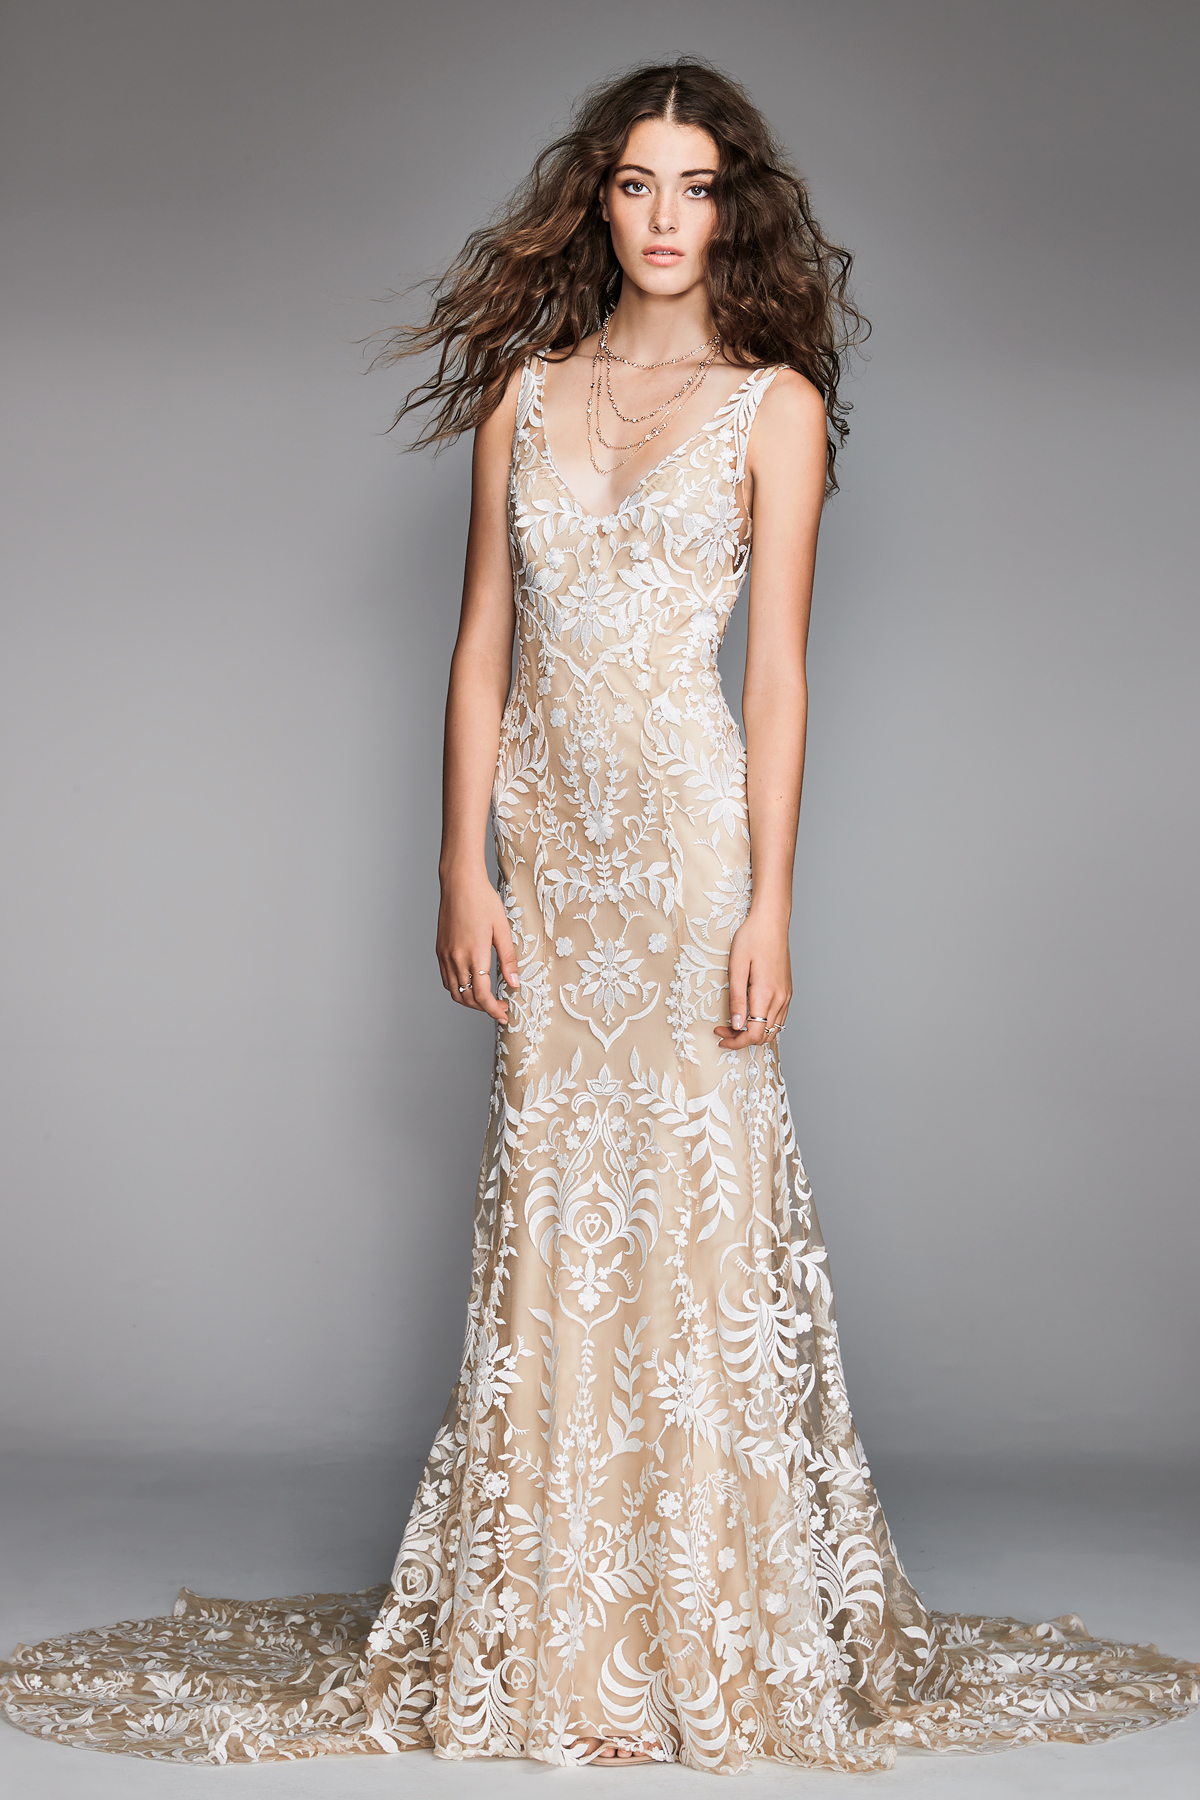 willowby by watters 2018 champagne v-neck floral detail wedding dress